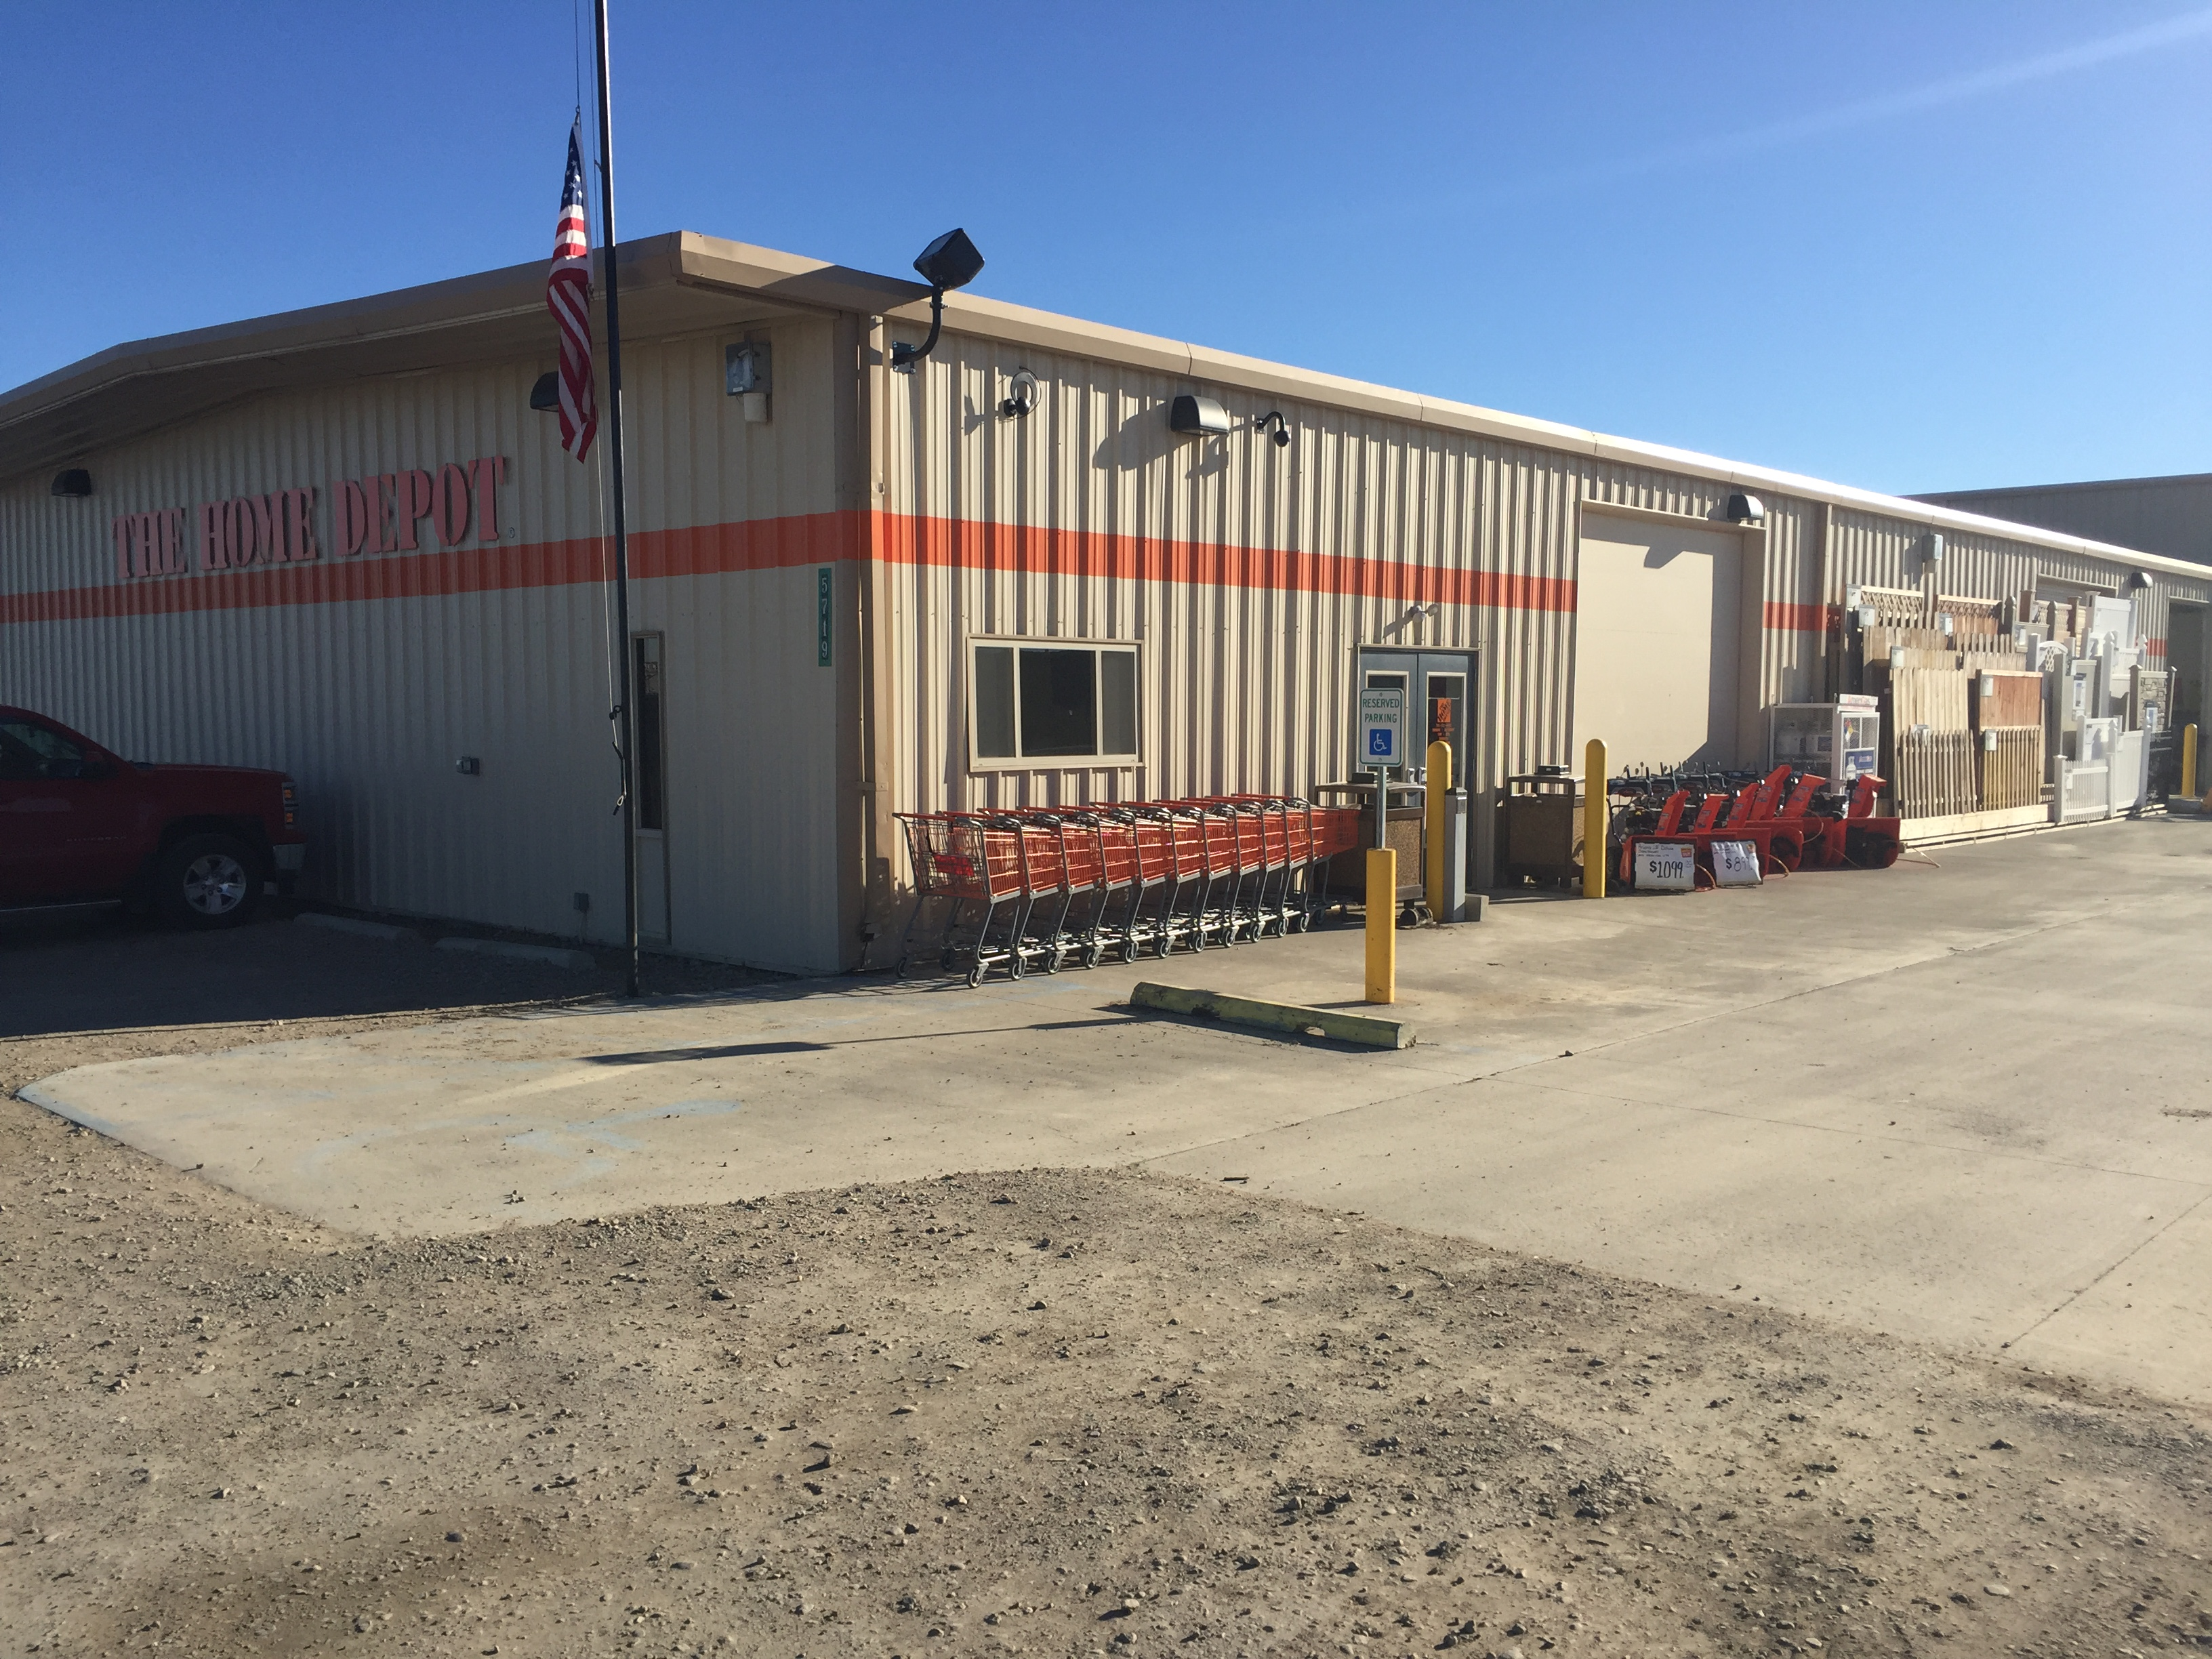 The home depot closed in williston nd 58801 for The williston